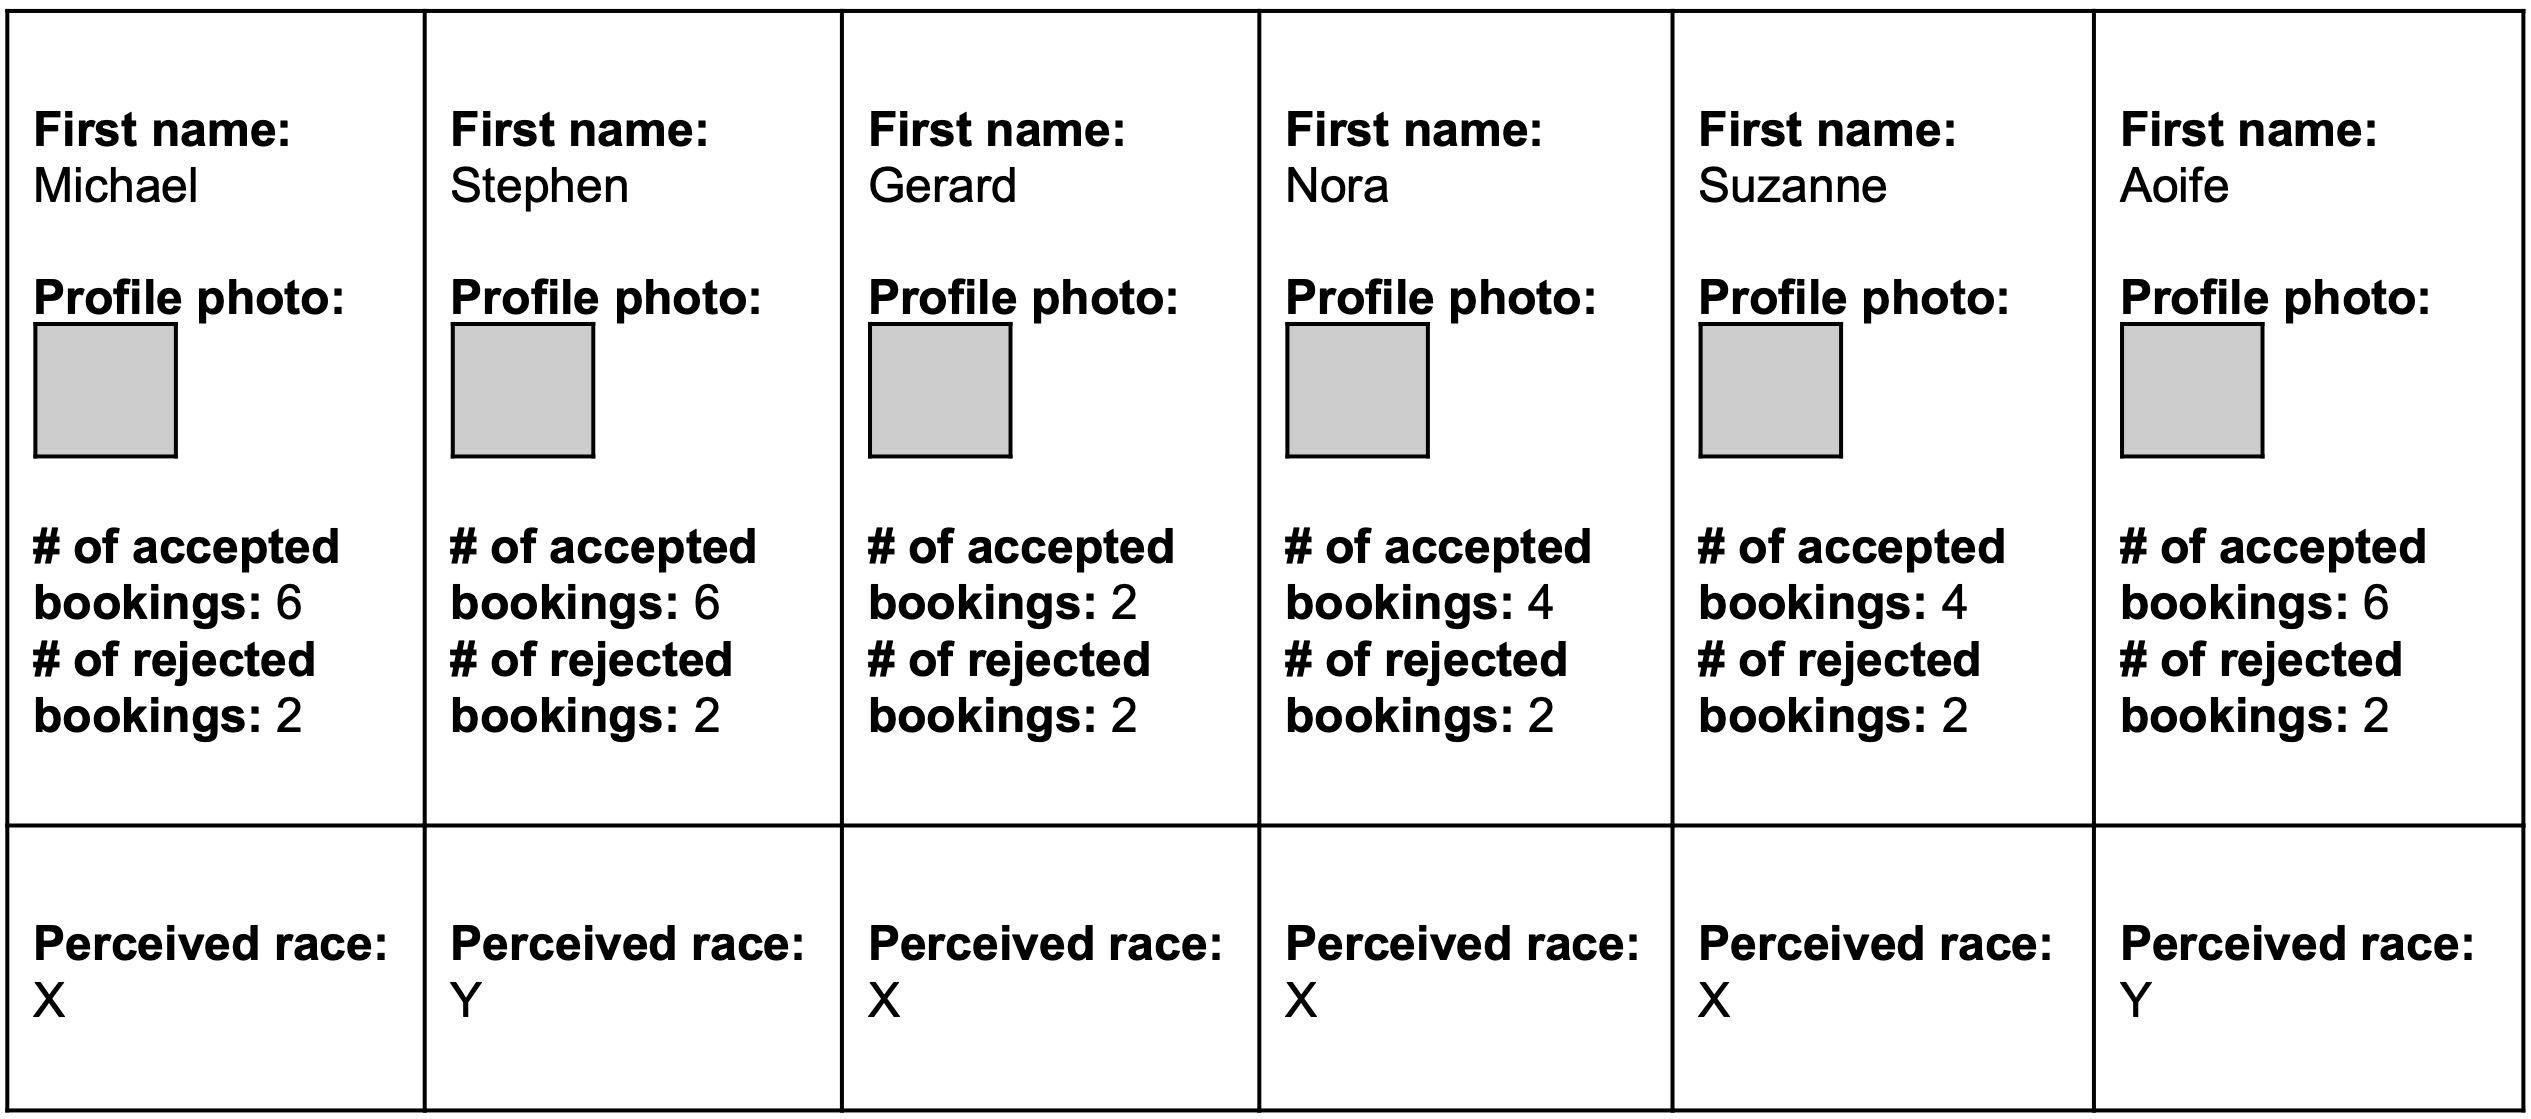 Michael, Gerard, Nora, and Suzanne have a perceived race of X. Stephen and Aoife have a perceived race of Y.